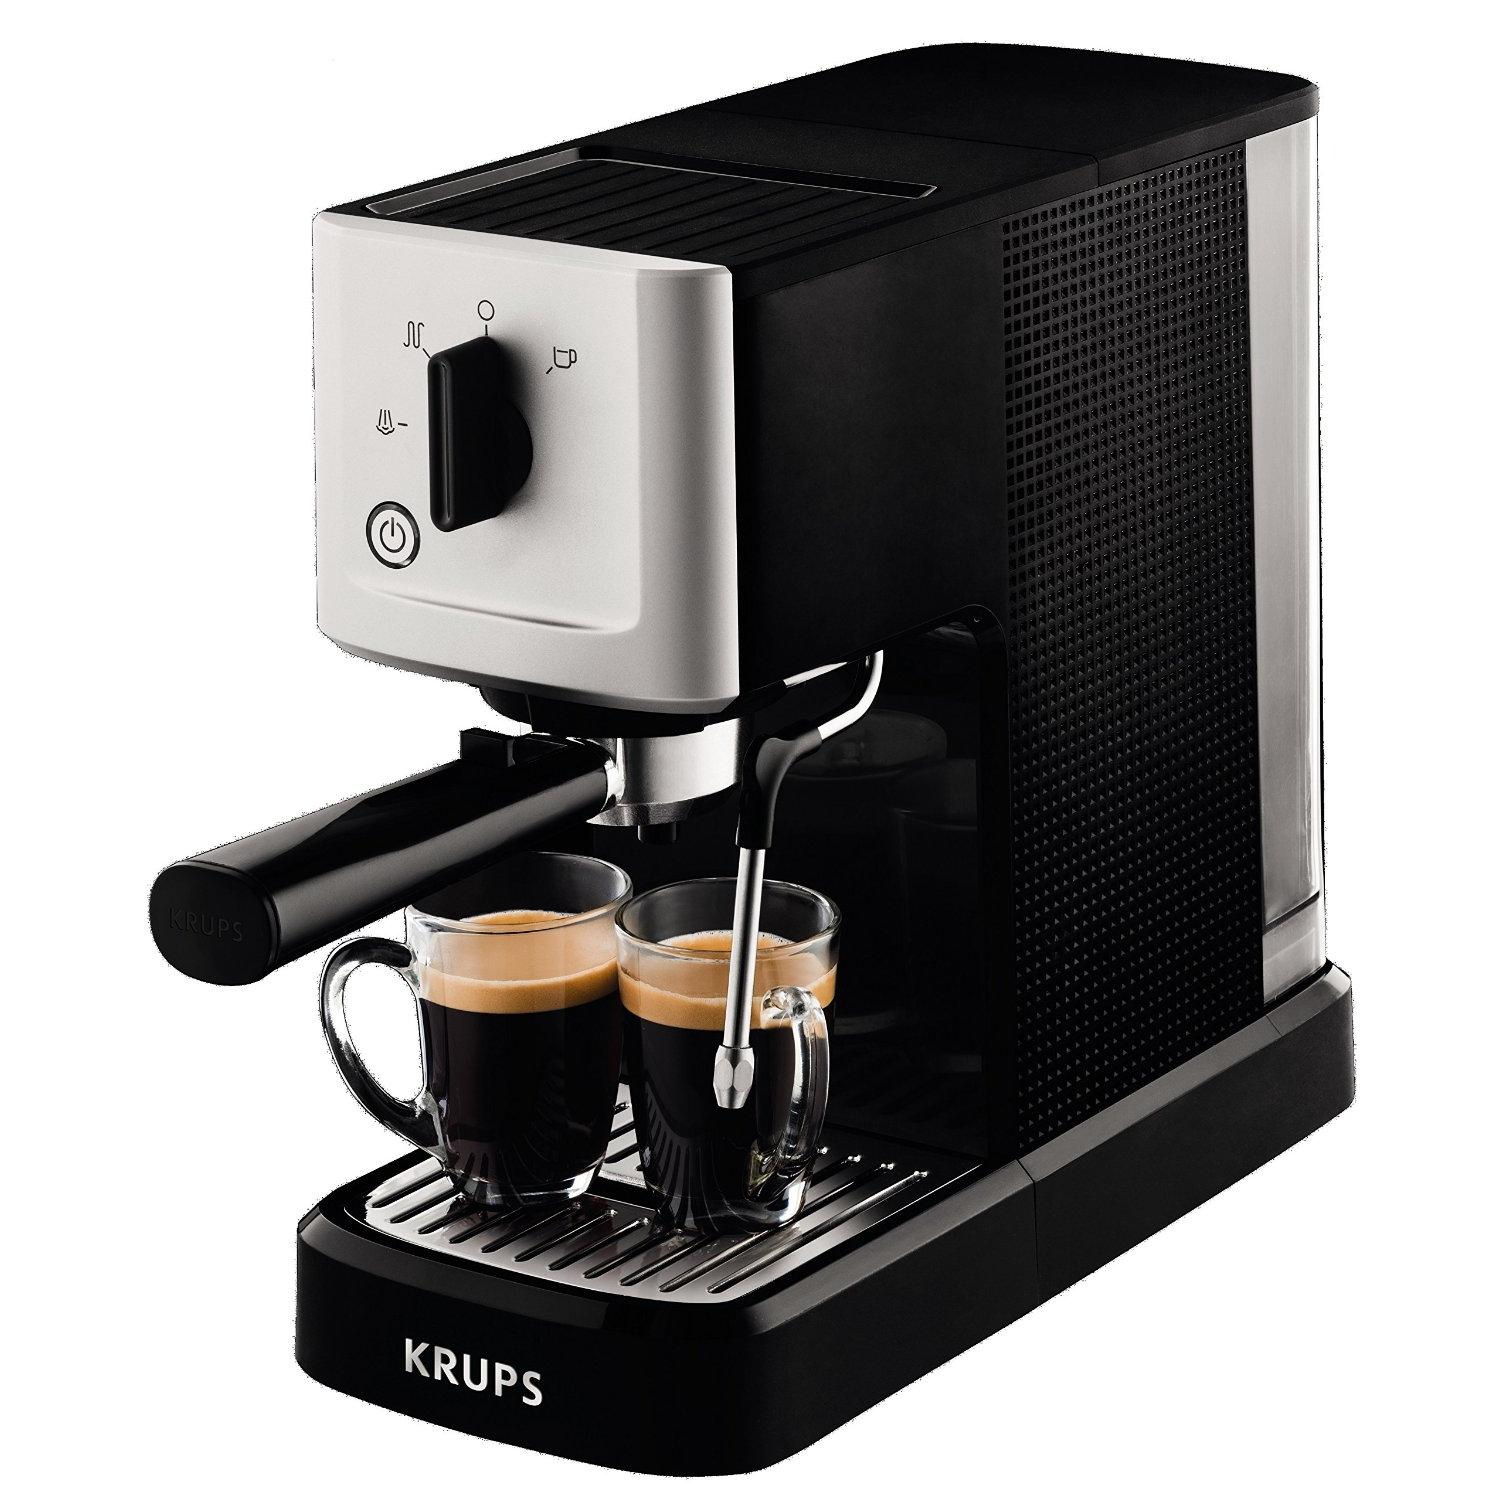 Krups - XP3440 - Machine Espresso 15 bars - Noir